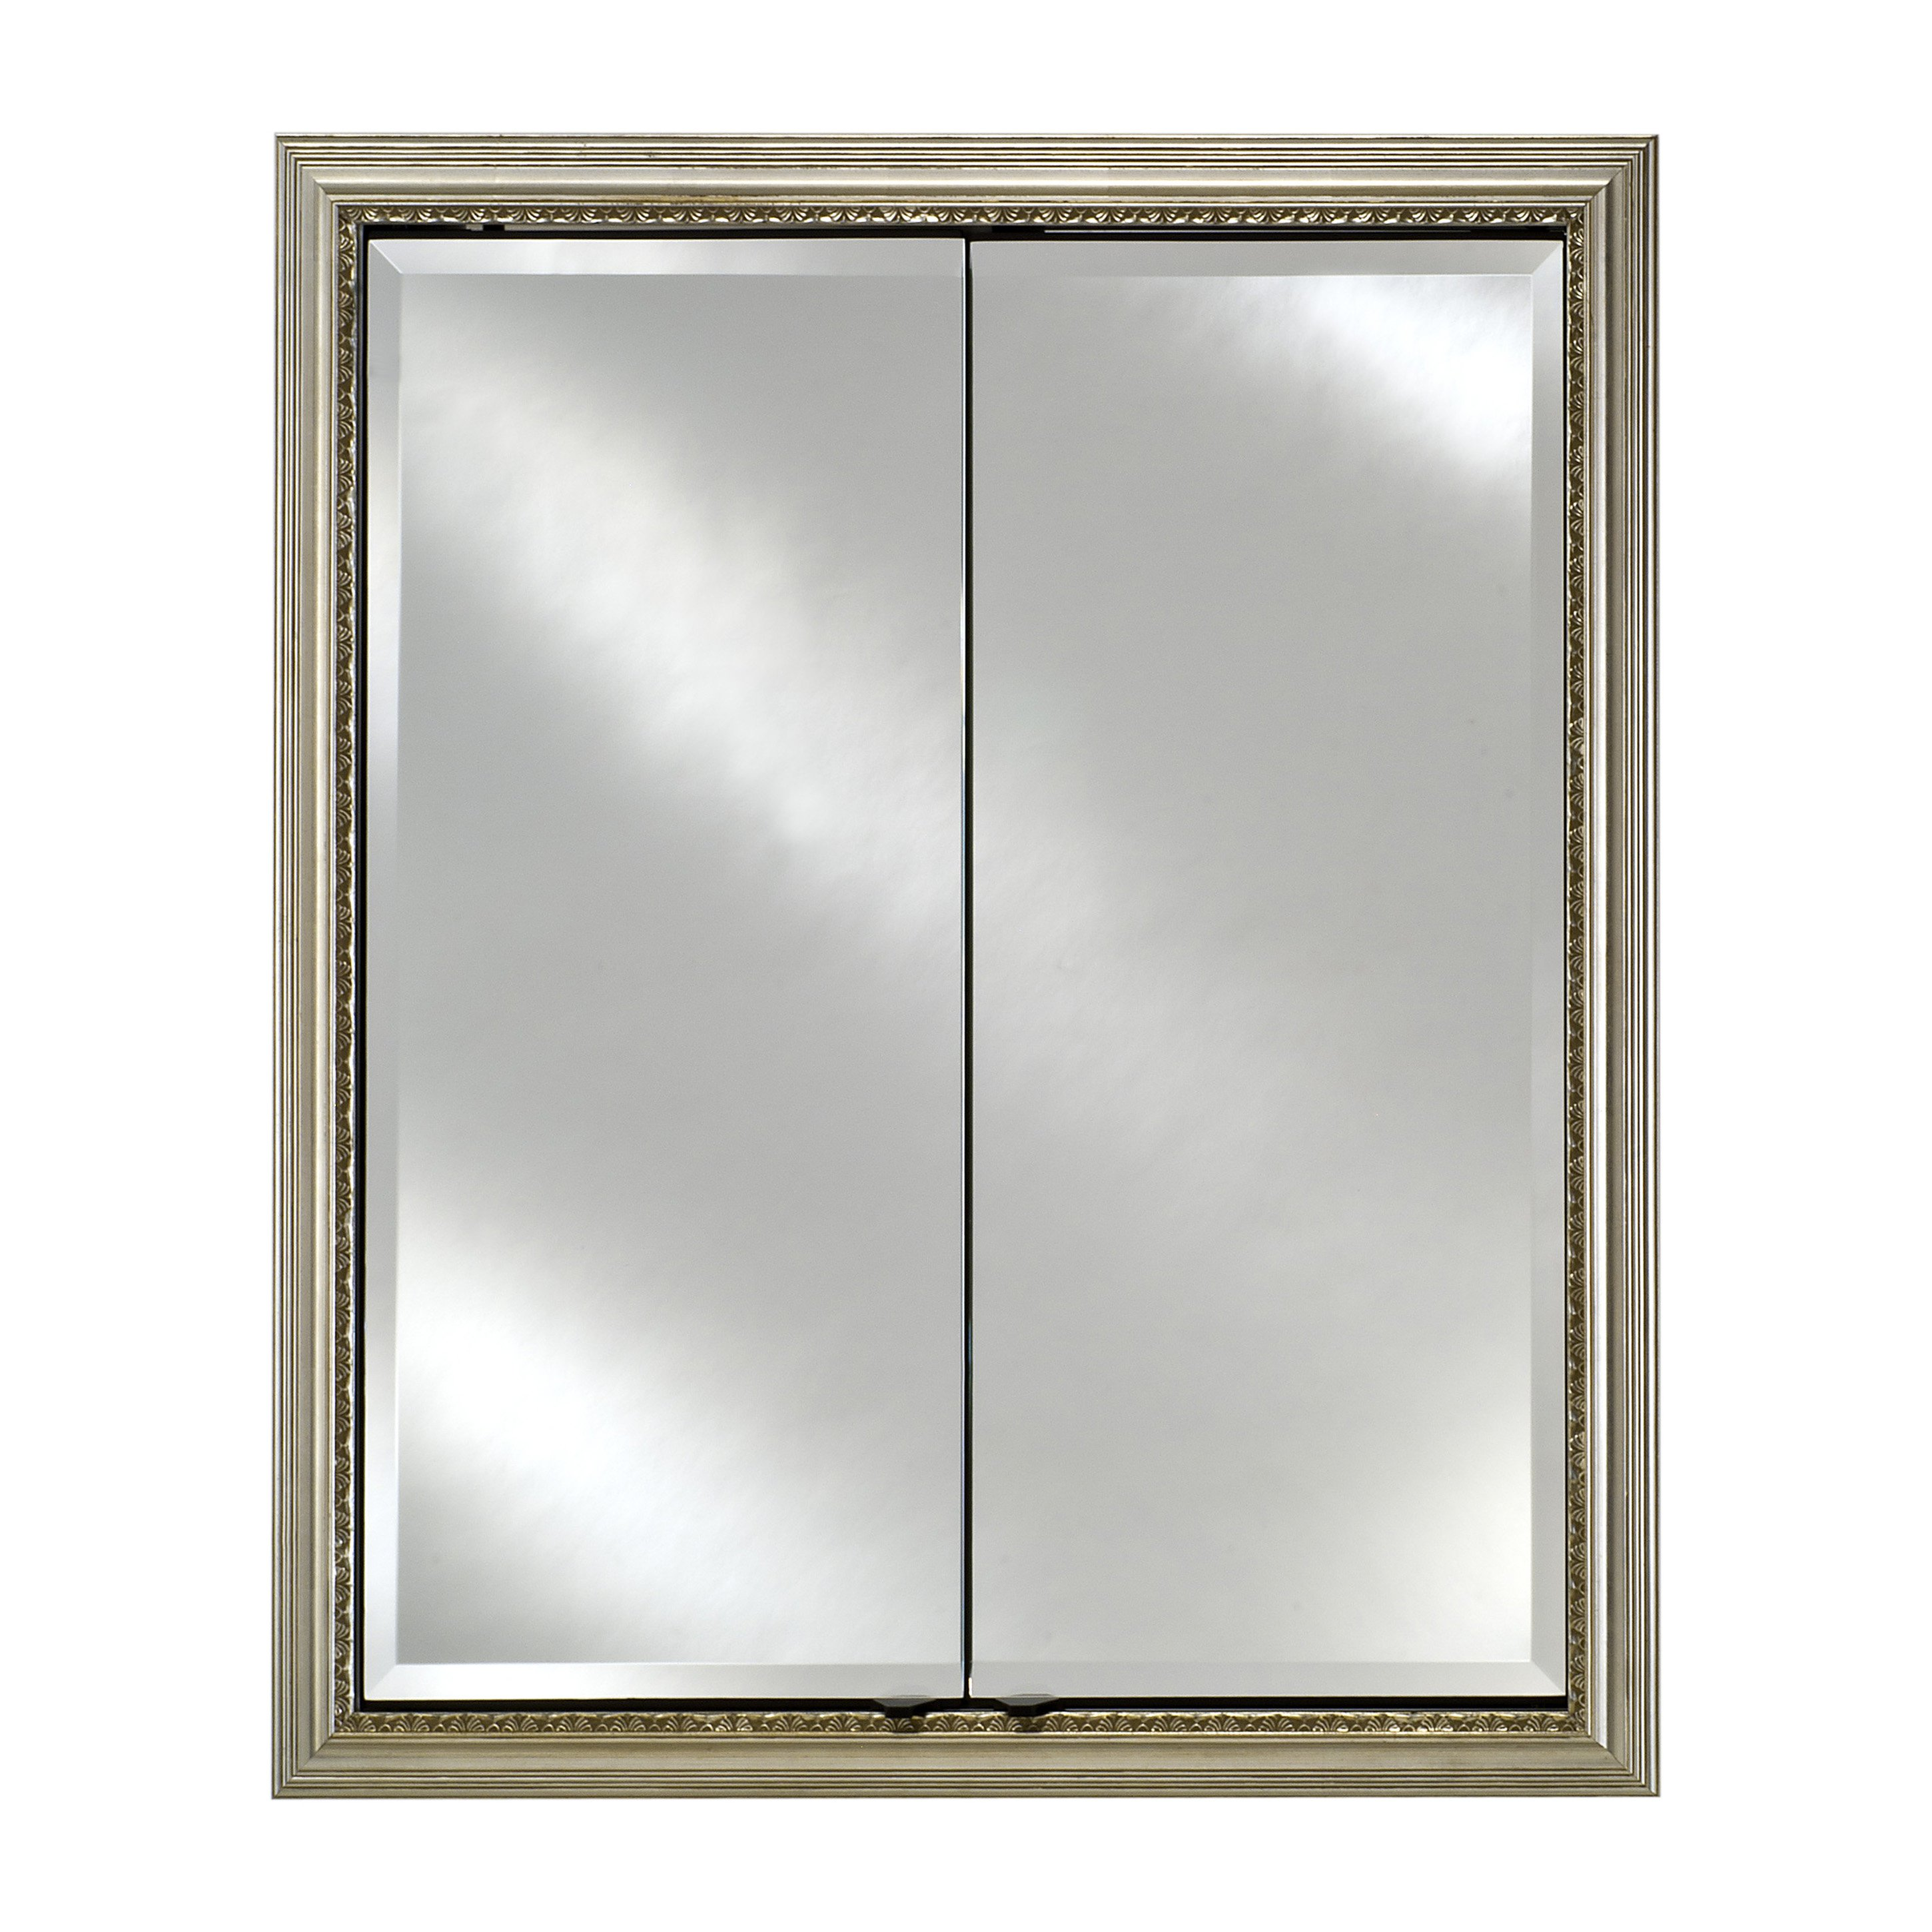 Afina Signature Collection Double Door 33W x 23H in. Surface Mount Medicine Cabinet